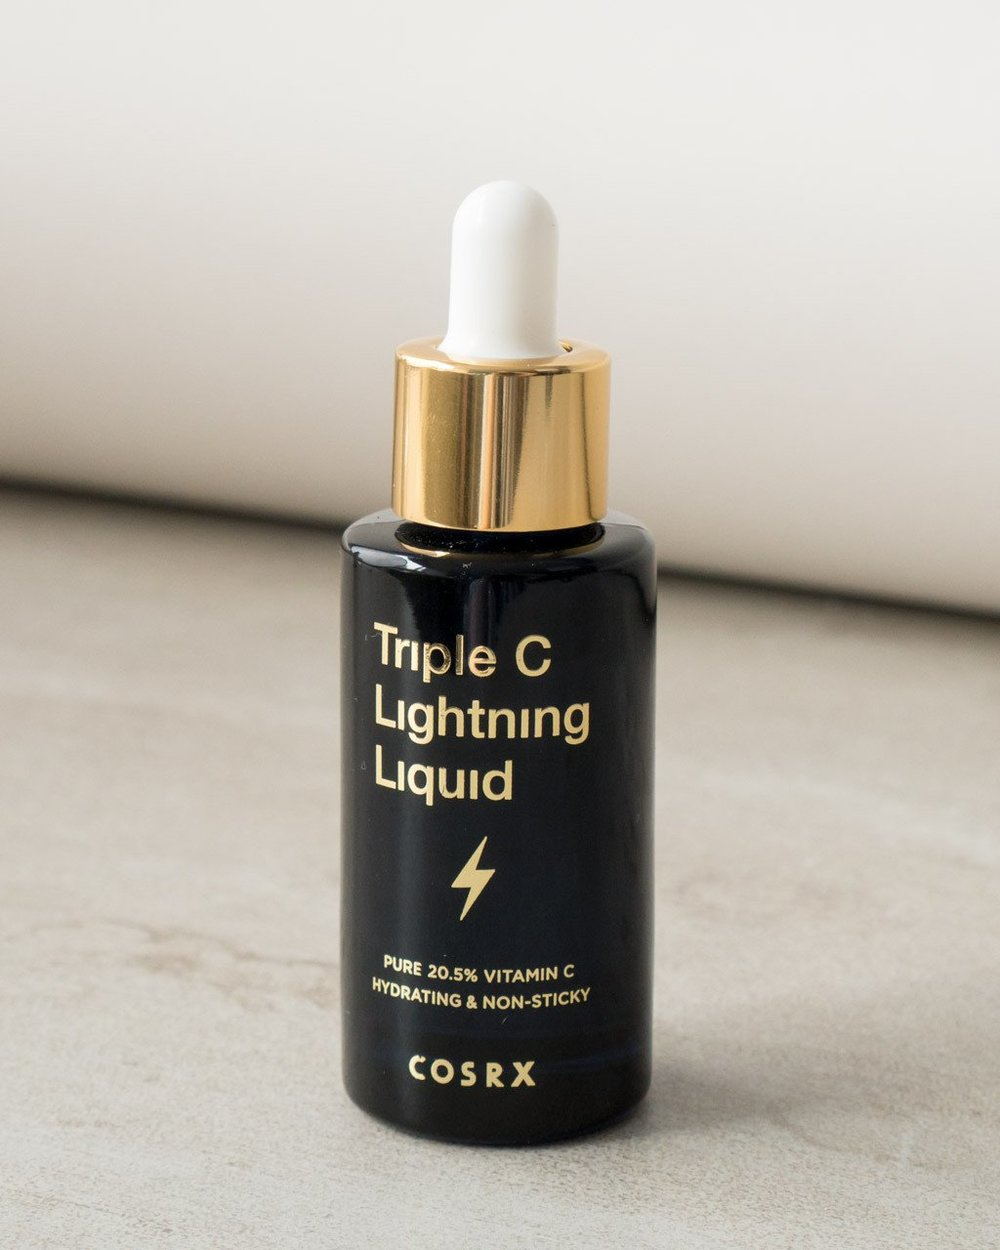 COSRX-Triple-C-Lightning-Liquid-2.jpg